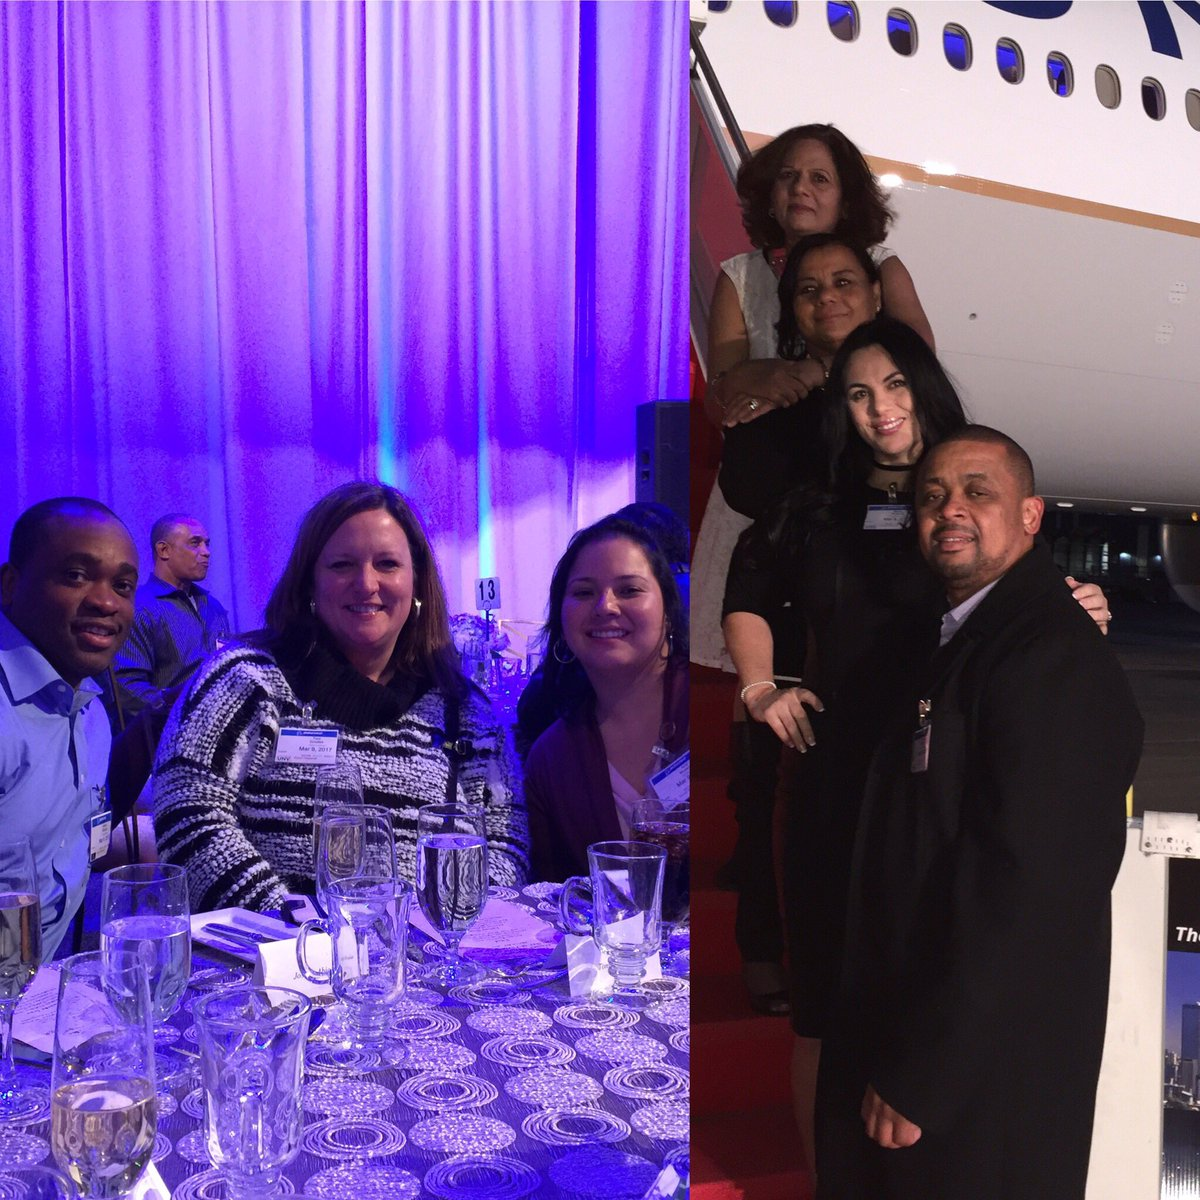 @weareunited #beingunited #whyILoveOA #Aircraftdelivery Newark and Dulles In the house!! <br>http://pic.twitter.com/cN0KKVV8J6